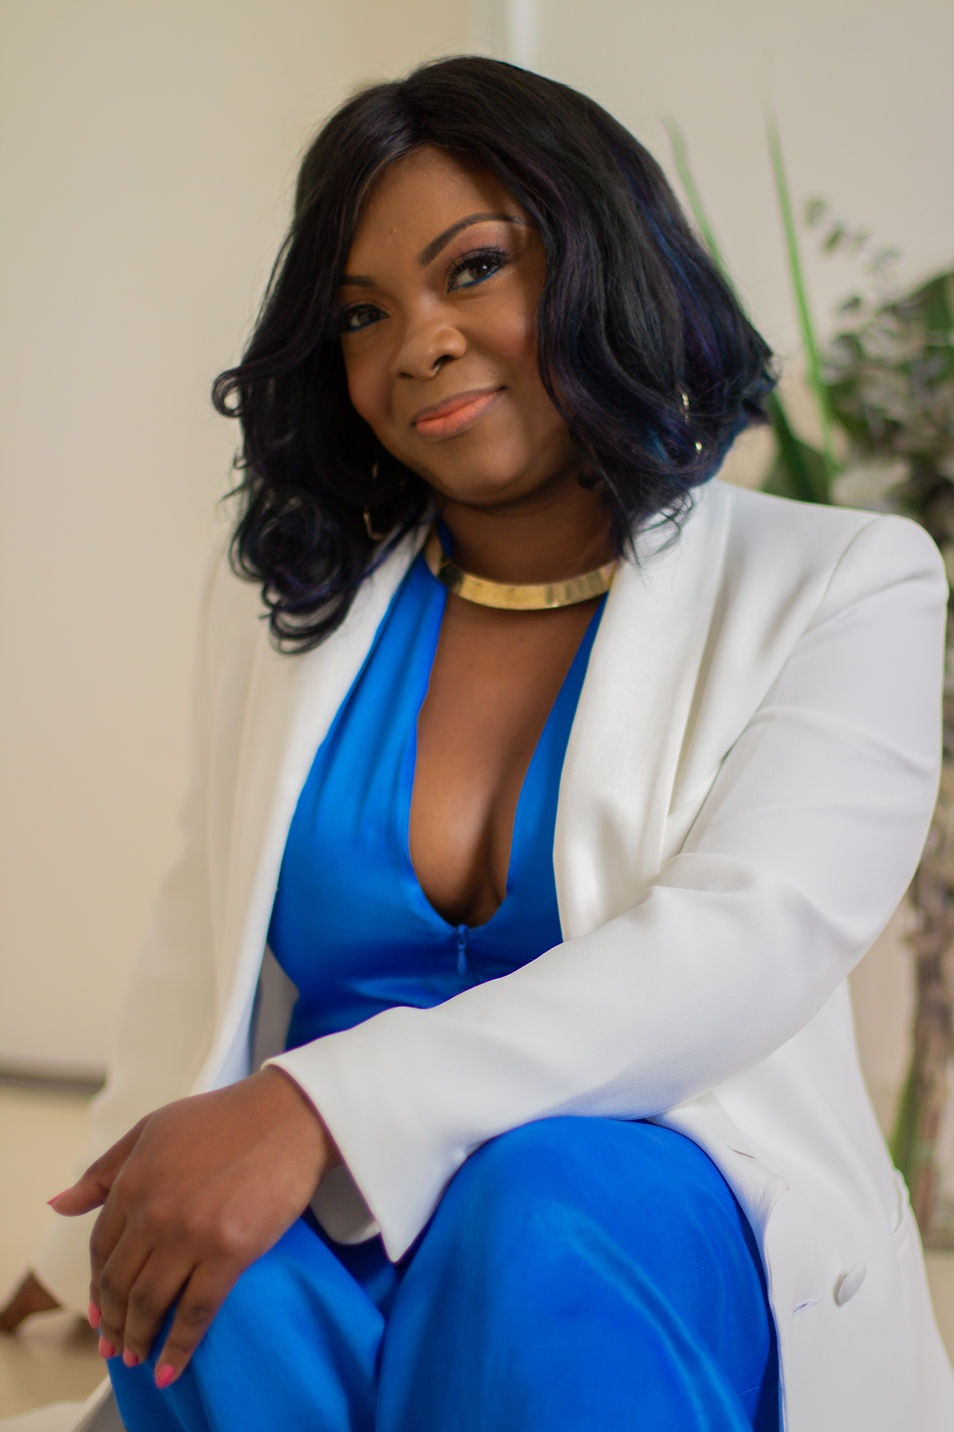 Ayanna Dutton - Co-Founder of Non-Corporate Girls